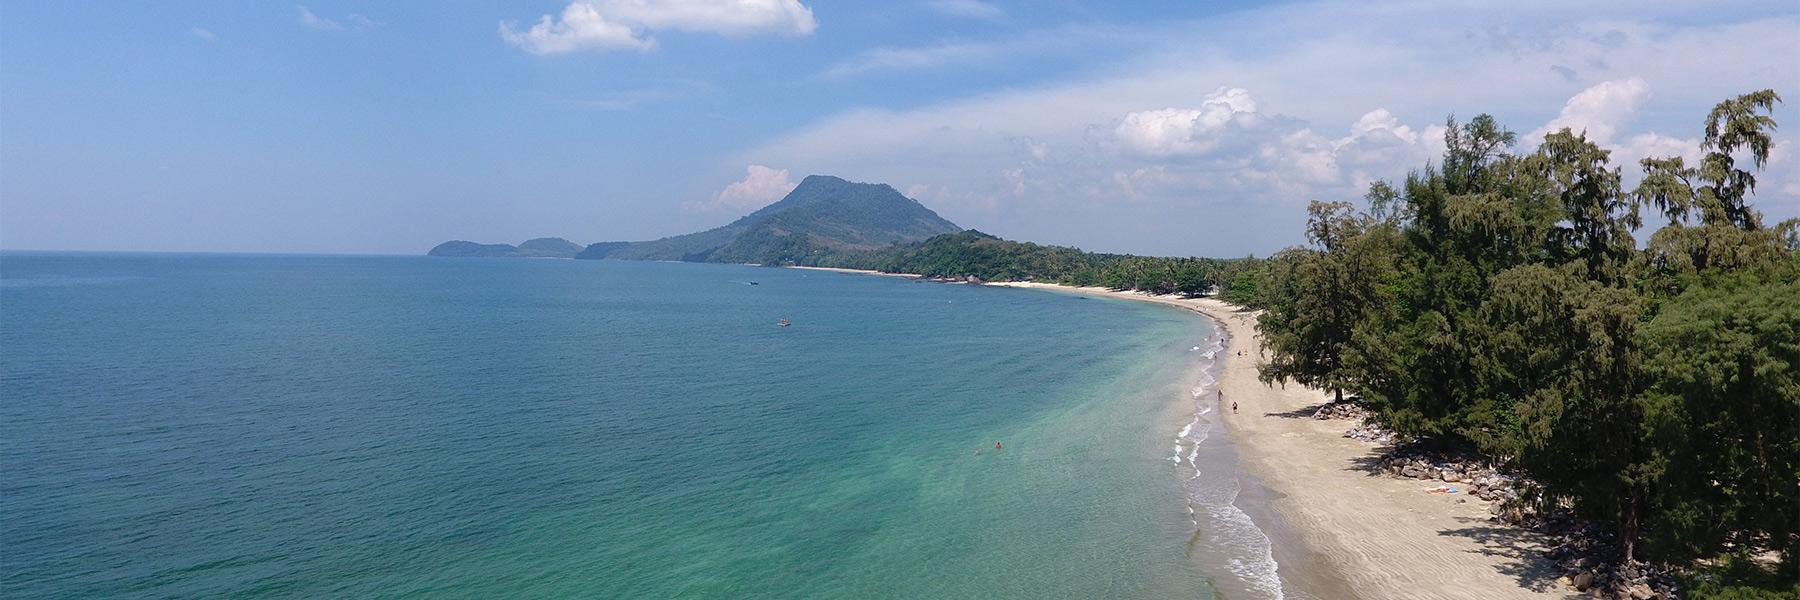 Why Visit Koh Jum?